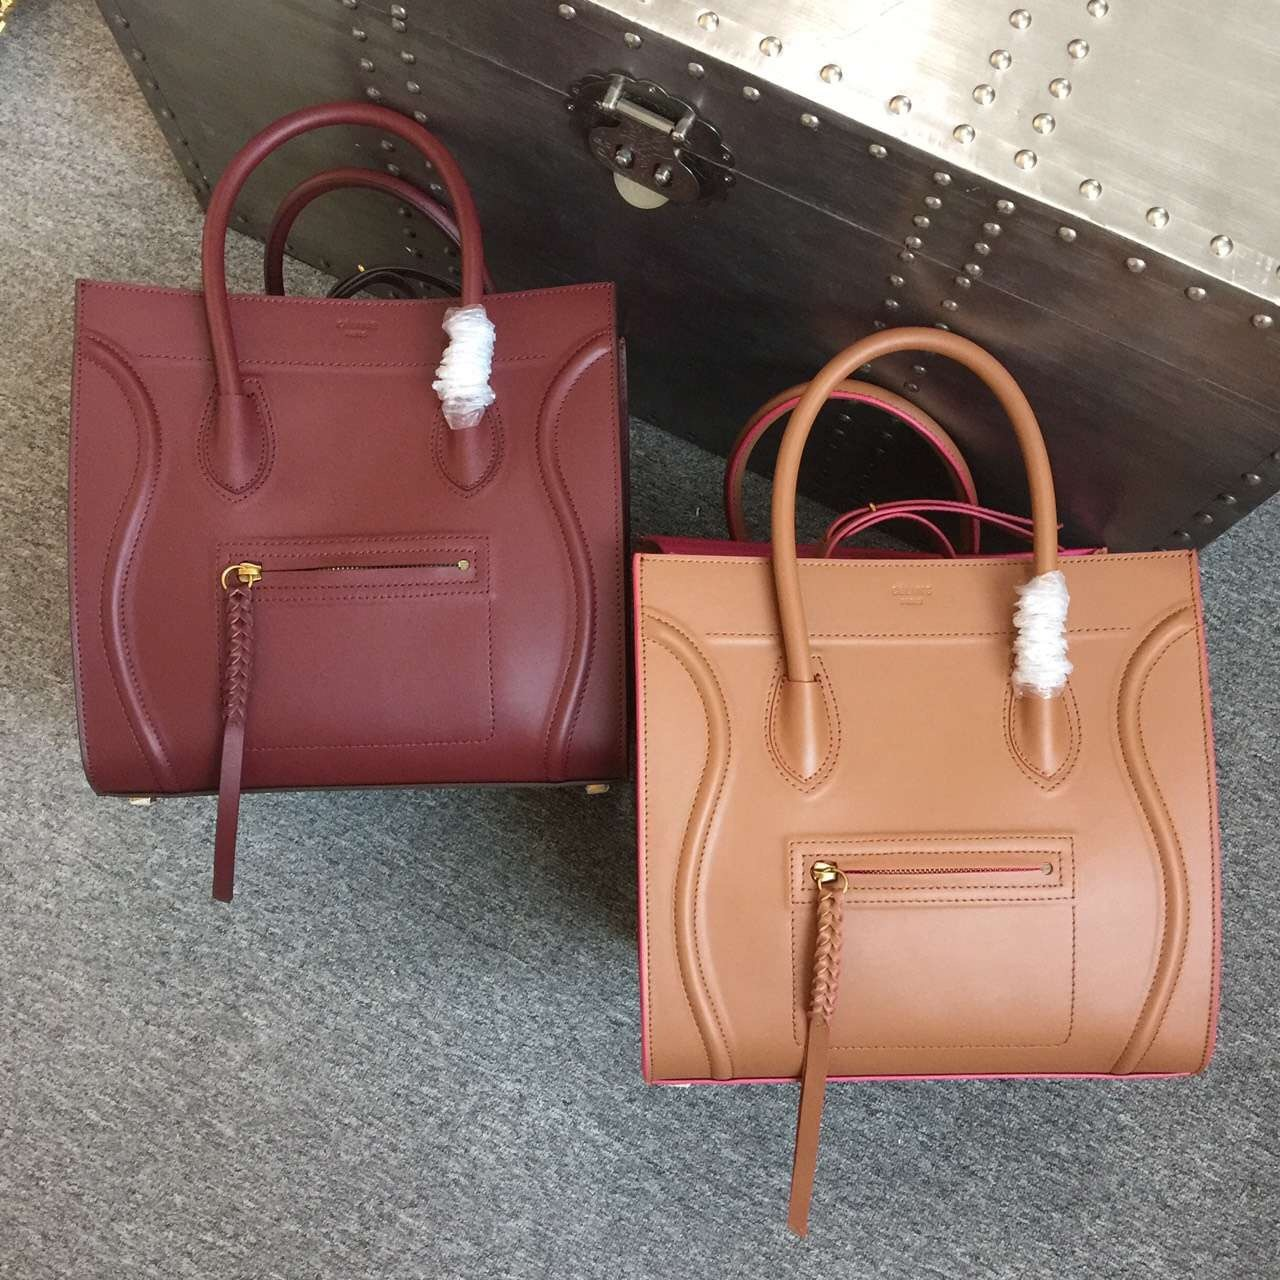 Celine Luggage Mini Shopper Bag Original Leather 98178